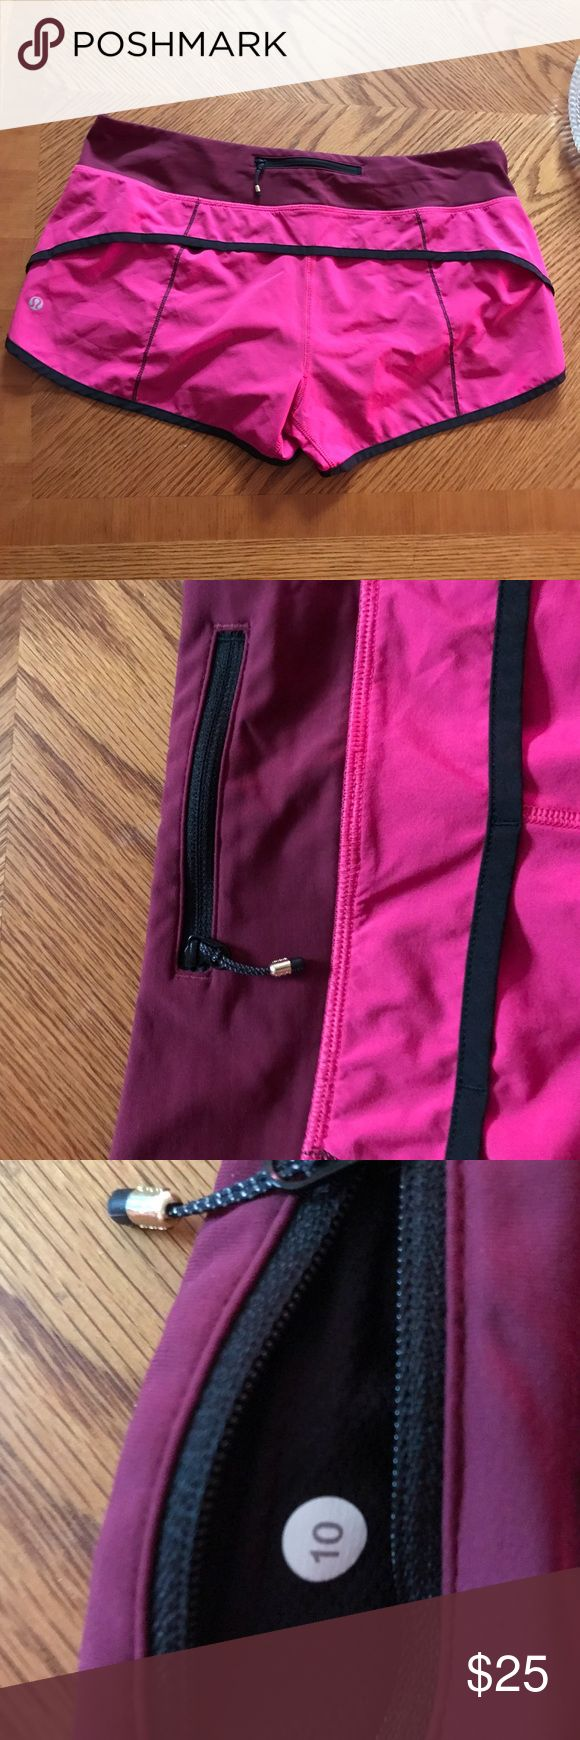 Lululemon Speed Shorts size 10 Goood condition other then shorts has no drawstring as it was  remove can easily be repair for a   new waist drawstring  for free at a local lululemon store  no papers needed price is set according. size 10 pink and burgundy colors. lululemon athletica Shorts